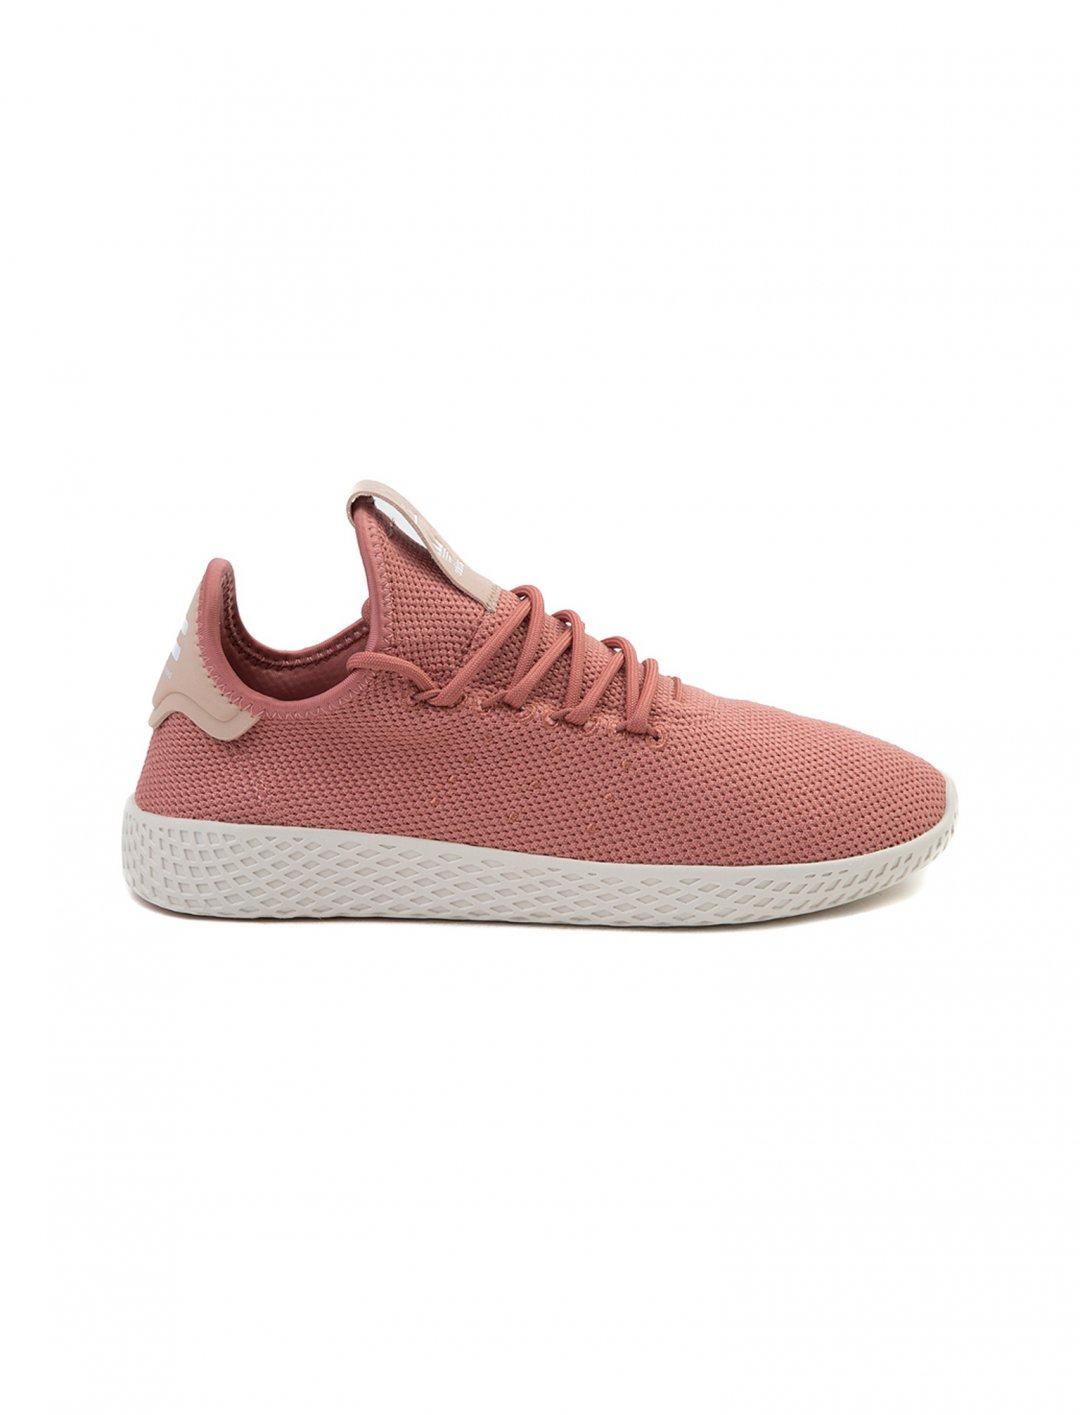 "Adidas Tennis Trainers {""id"":12,""product_section_id"":1,""name"":""Shoes"",""order"":12} Adidas Originals"